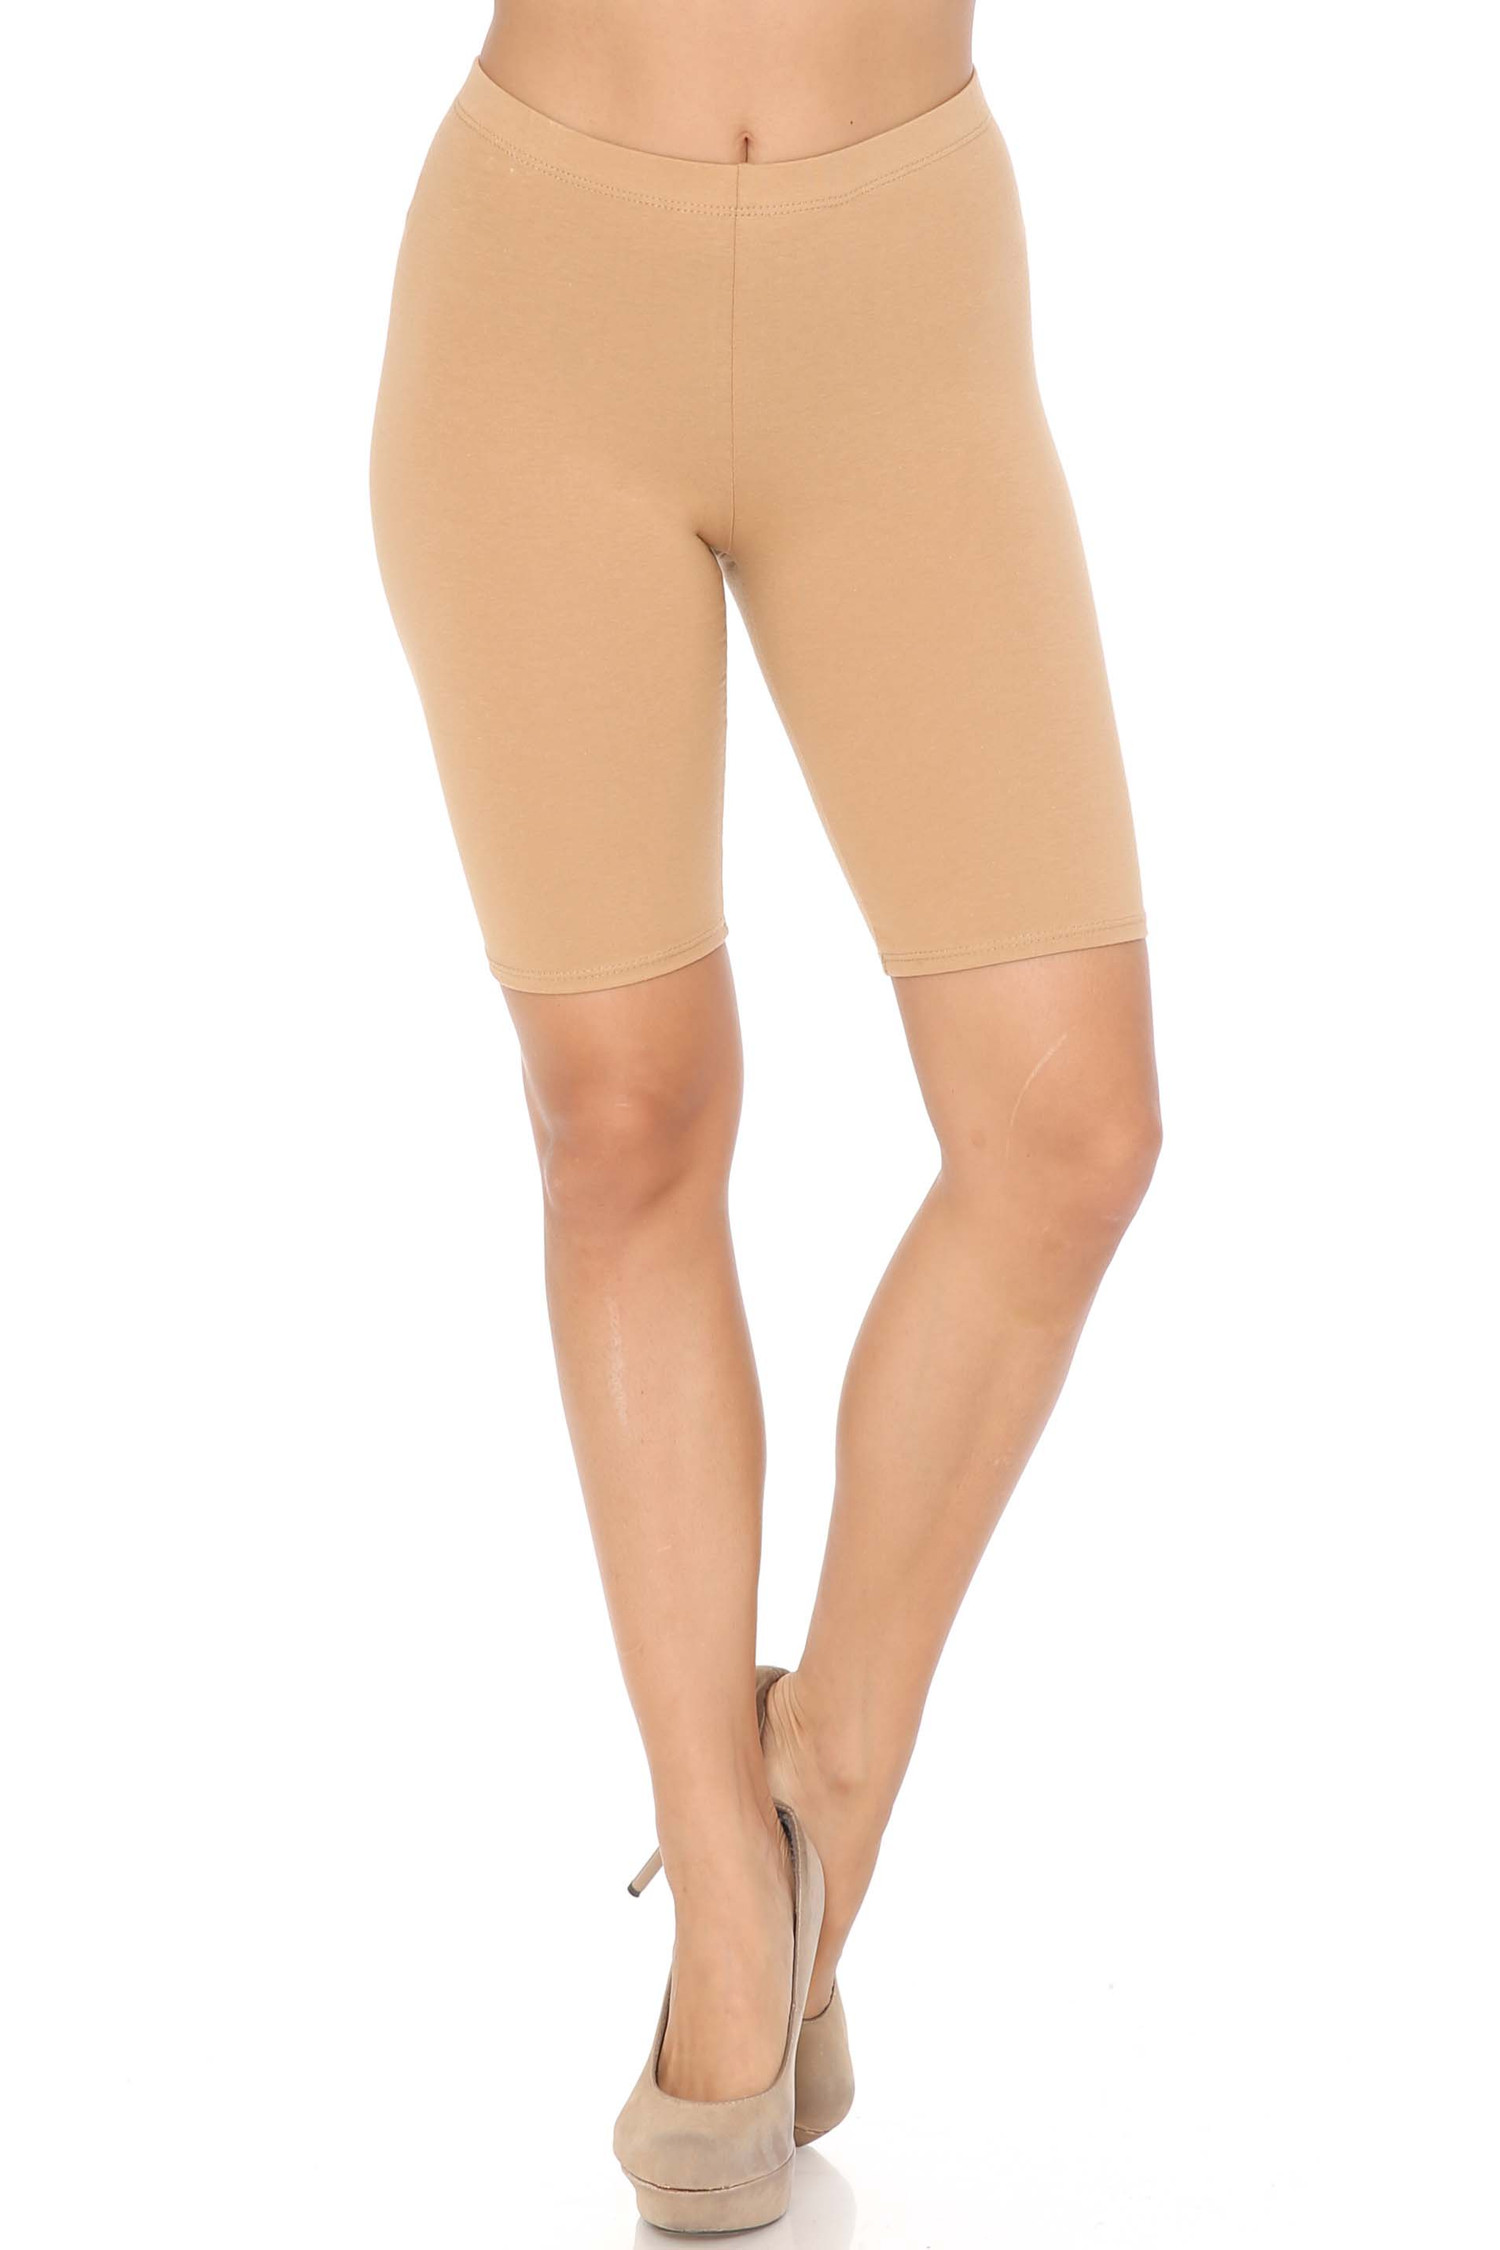 Front view of beige USA Basic Cotton Thigh Shorts - Bermuda Shorts